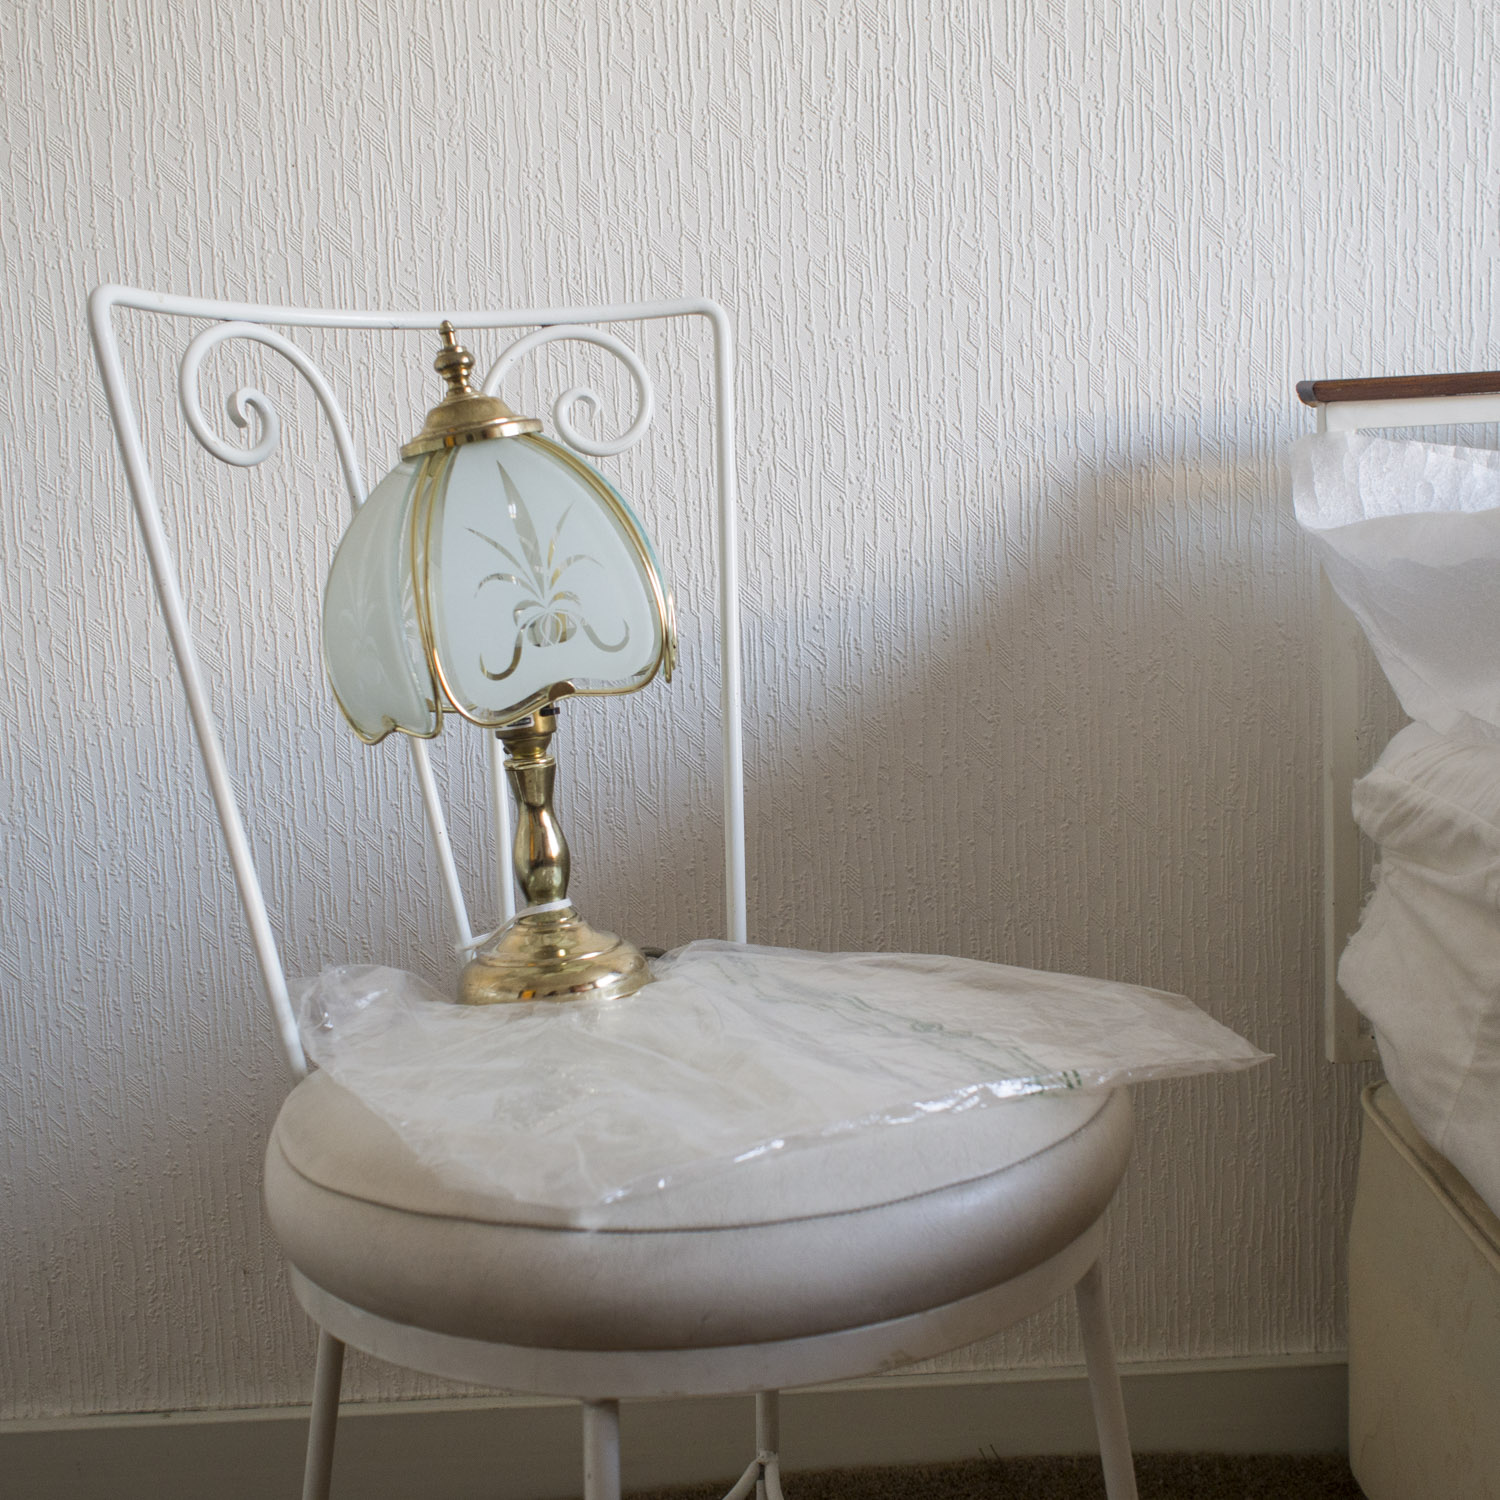 Doris's bedside lamp. Doris is George's sister. She lives in a care home but they lived together all their lives before she had to move due to dementia.